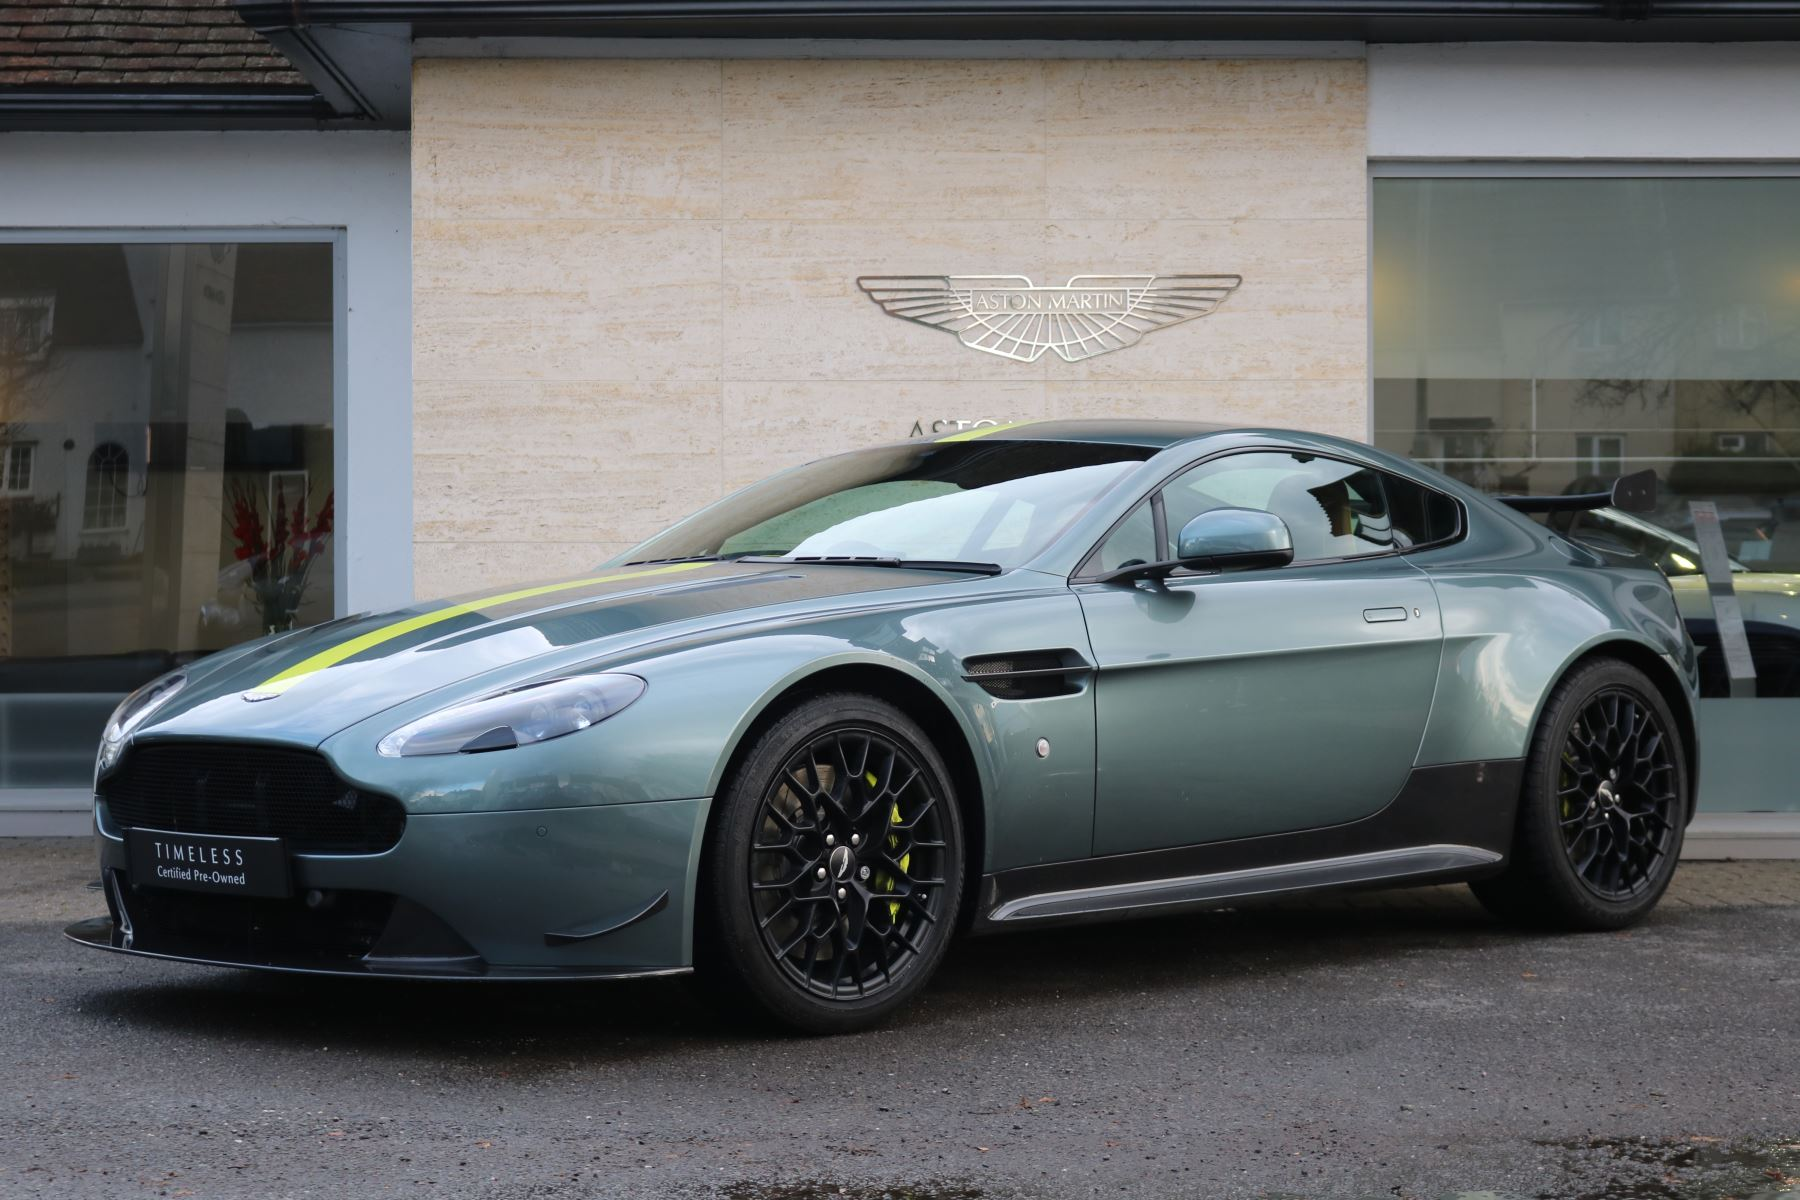 used - aston martin - green cars for sale | grange